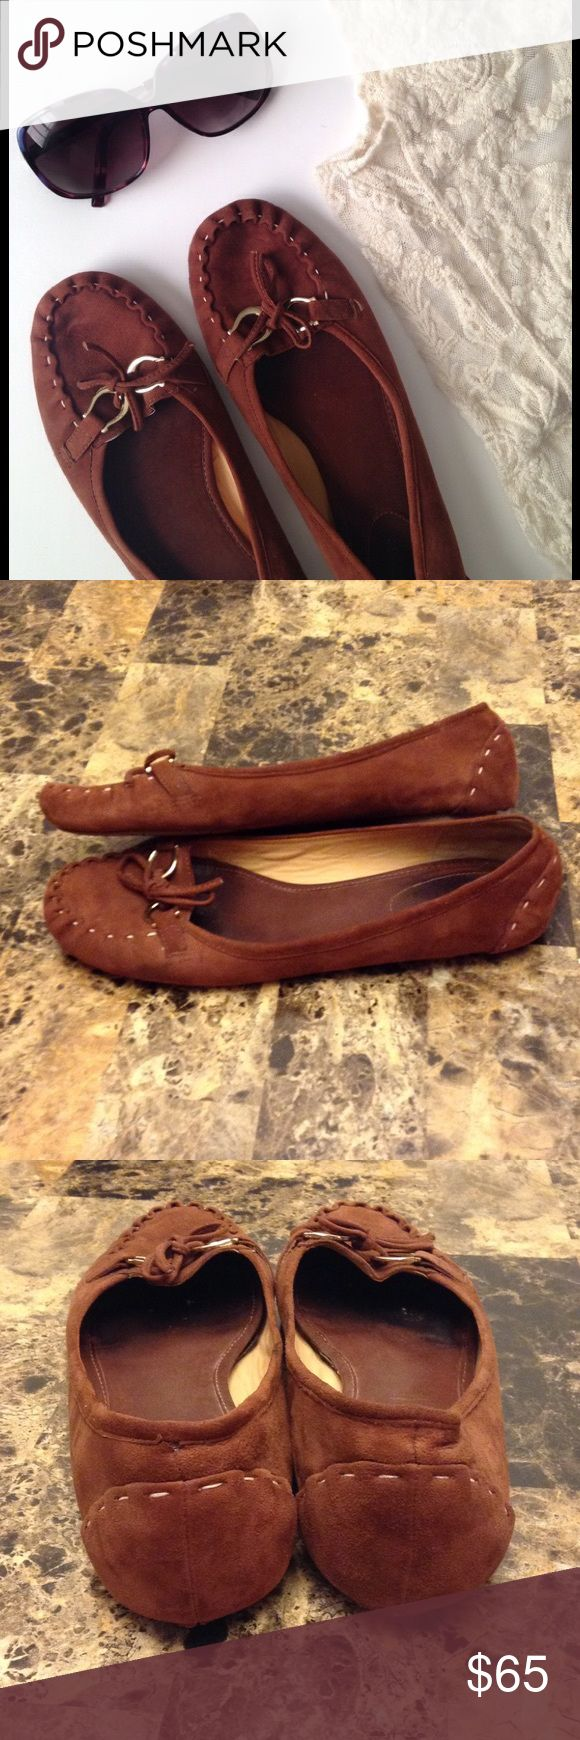 Kate Spade Brown Suede Loafer Moccasins Kate Spade Brown Suede Loafer Moccasins. Size 8.5M. Gently worn. Only note is the back heels have minor wear. See last pic. Otherwise in great condition. Plenty of life left and super comfy! kate spade Shoes Moccasins